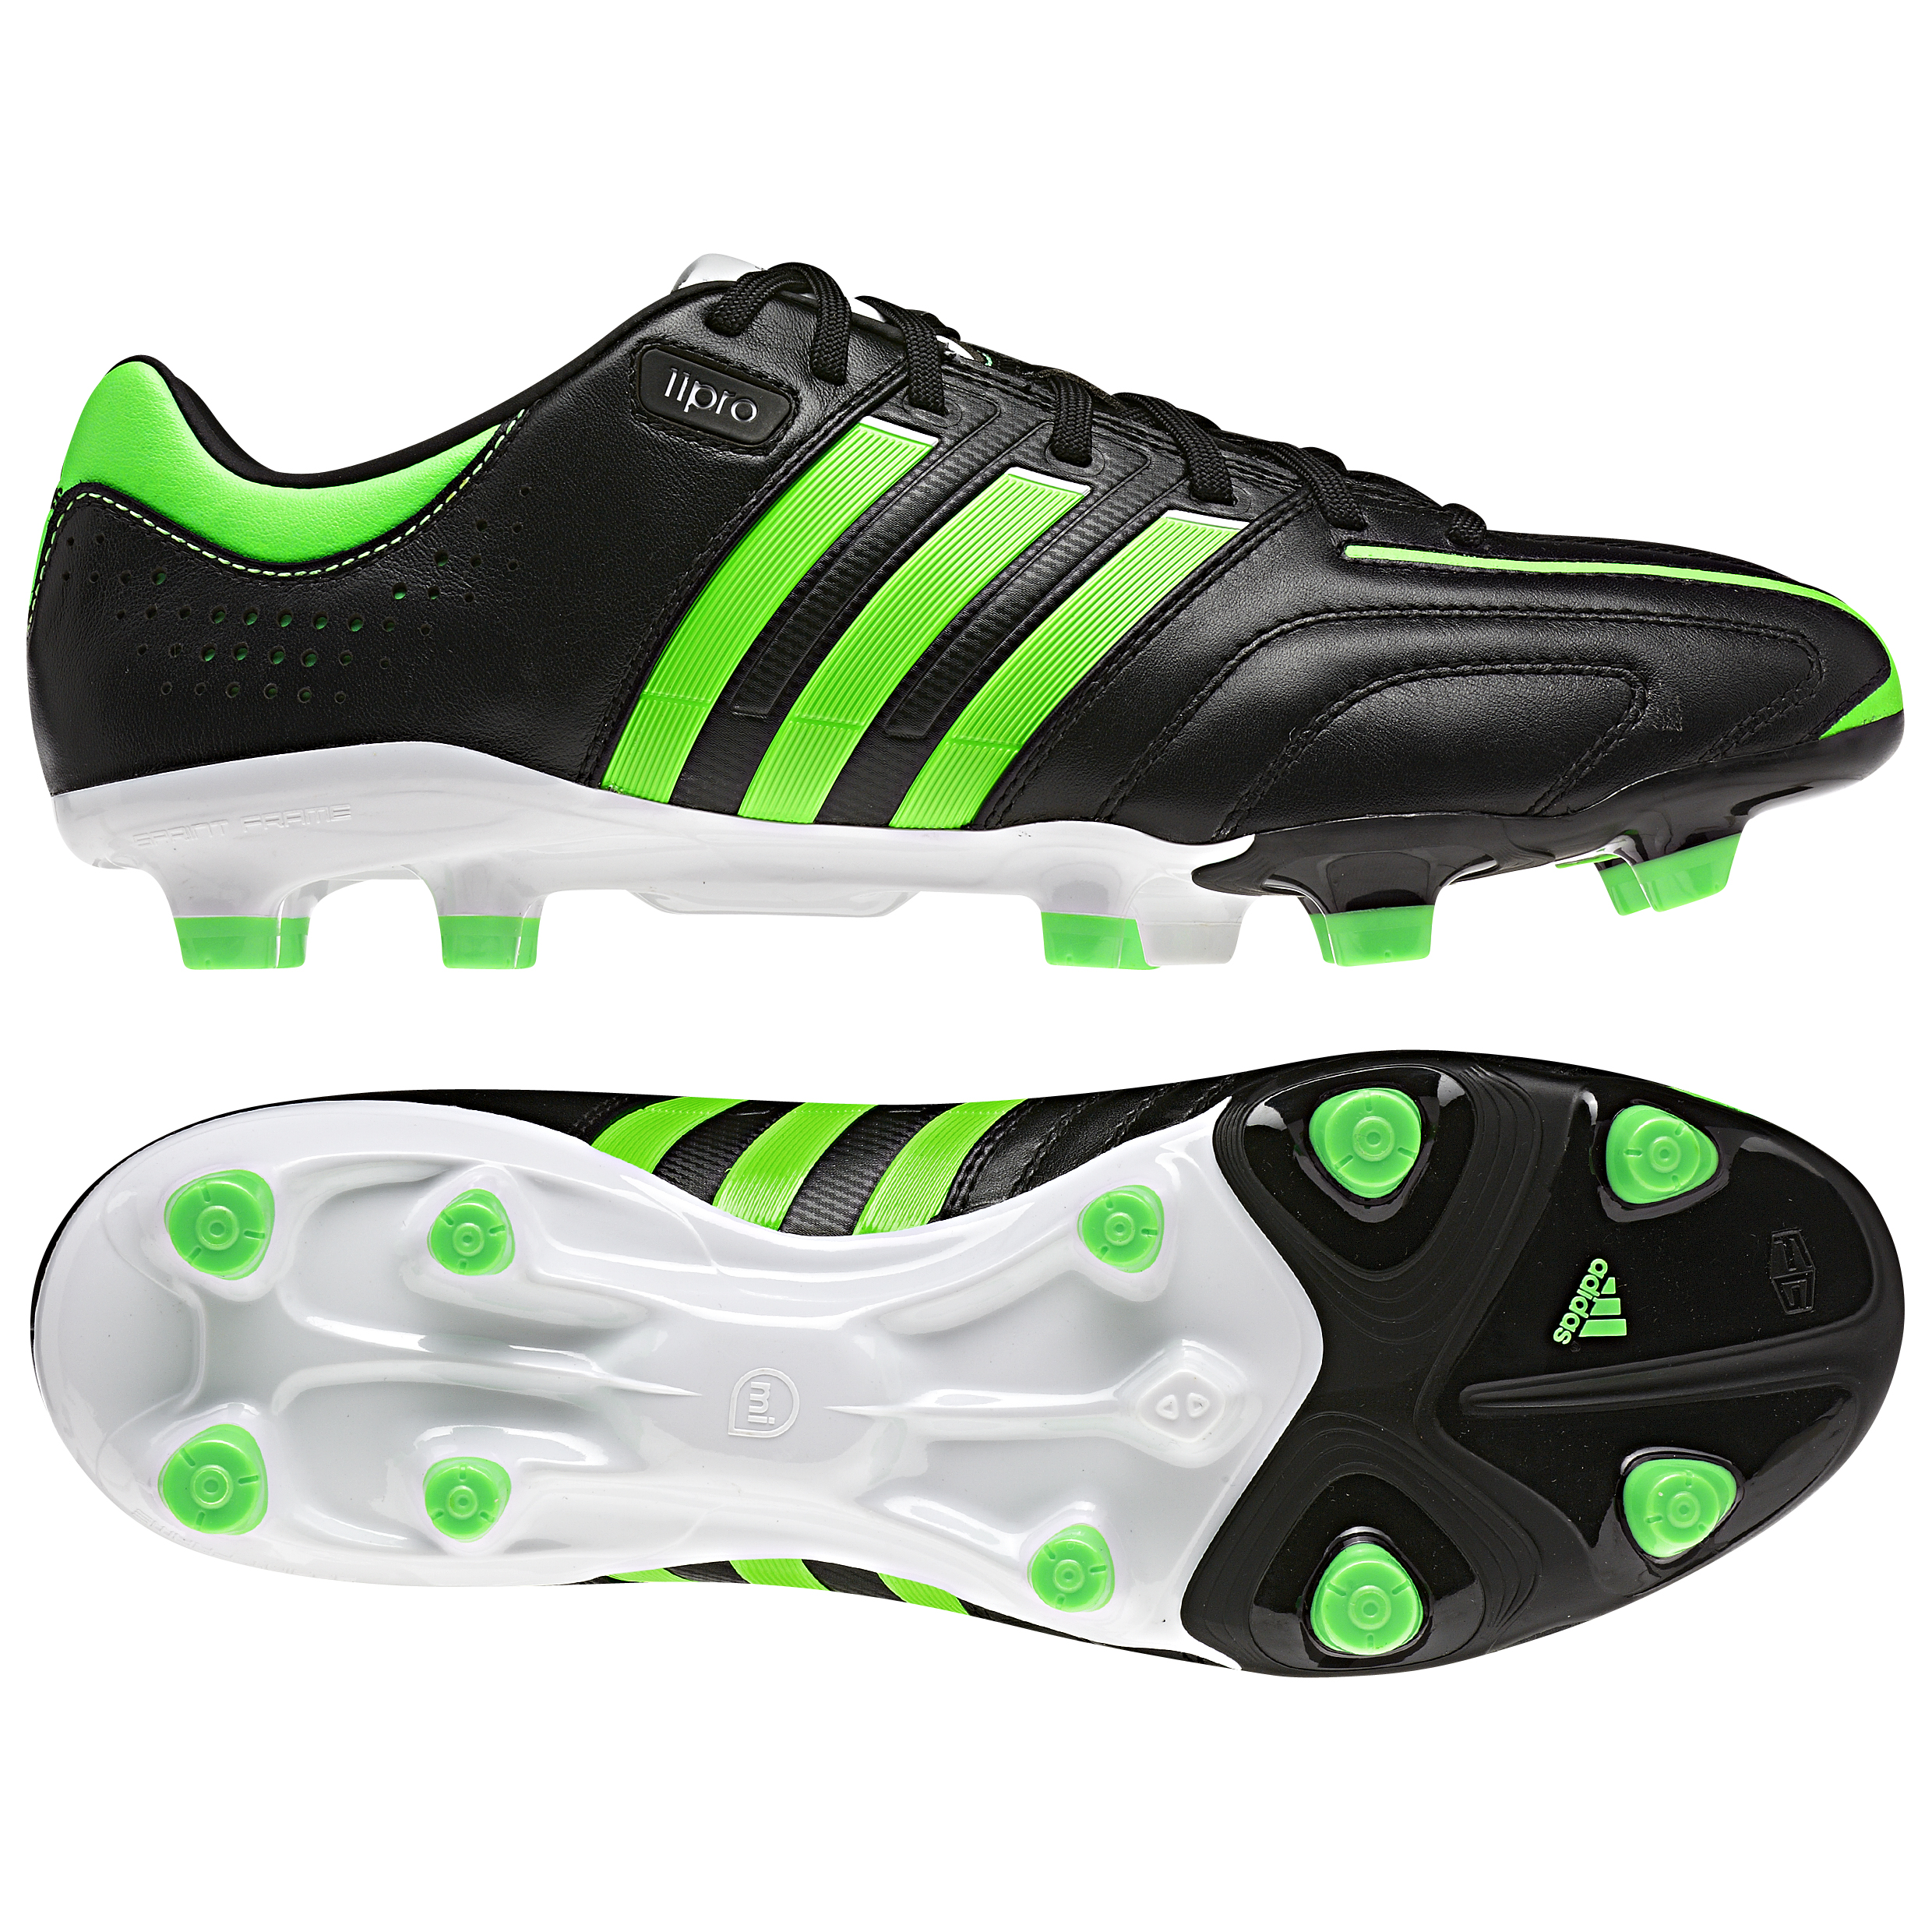 adidas AdiPure 11Pro TRX Firm Ground Football Boots - Black/Green Zest/Running White